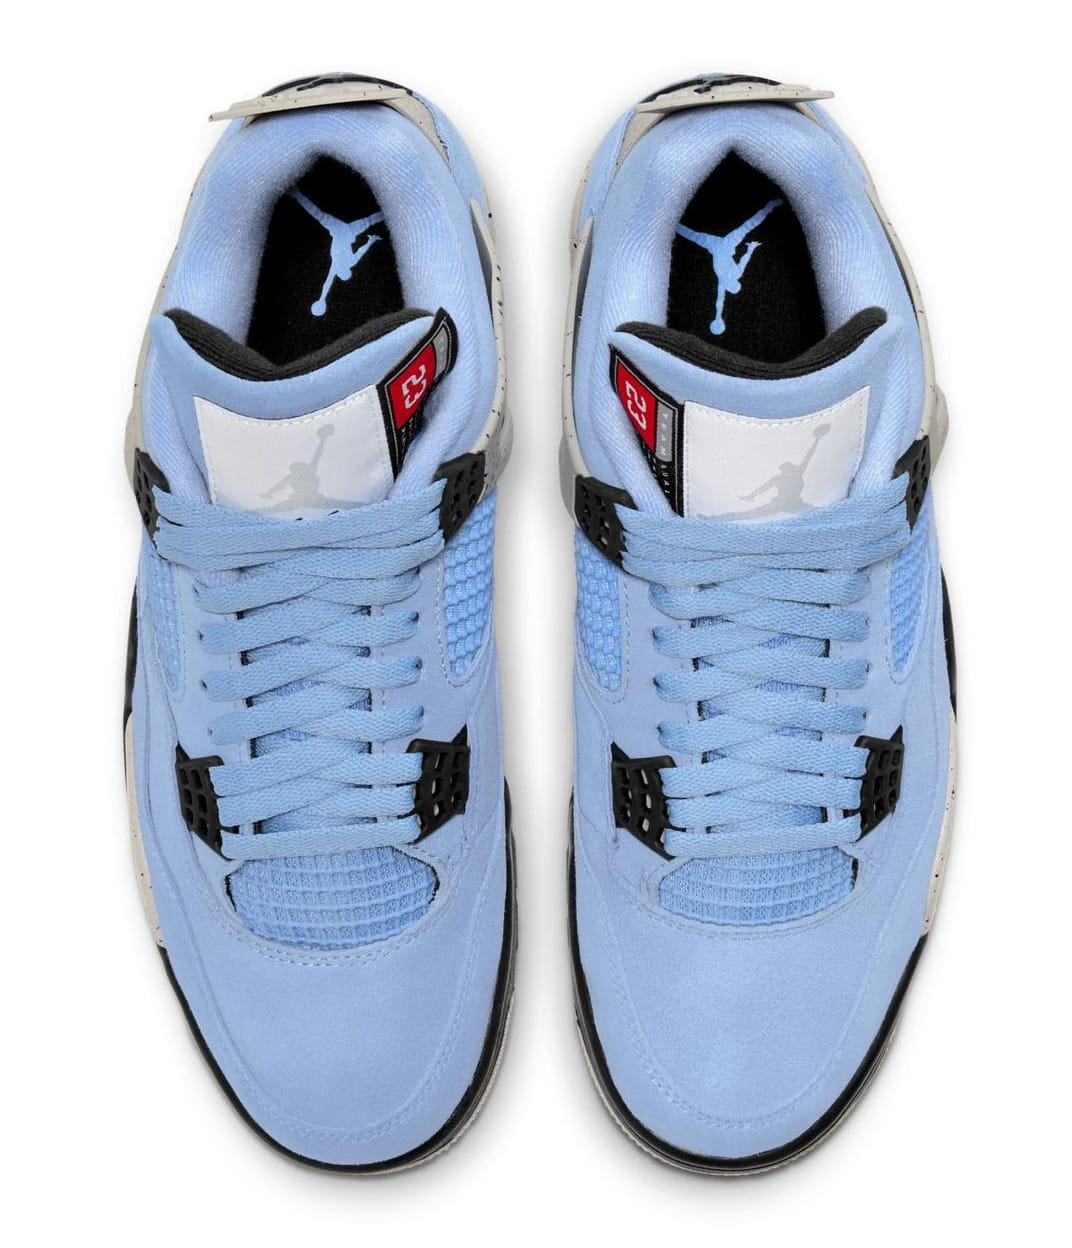 Air Jordan 4 Retro 'University Blue' CT8527-400 Top